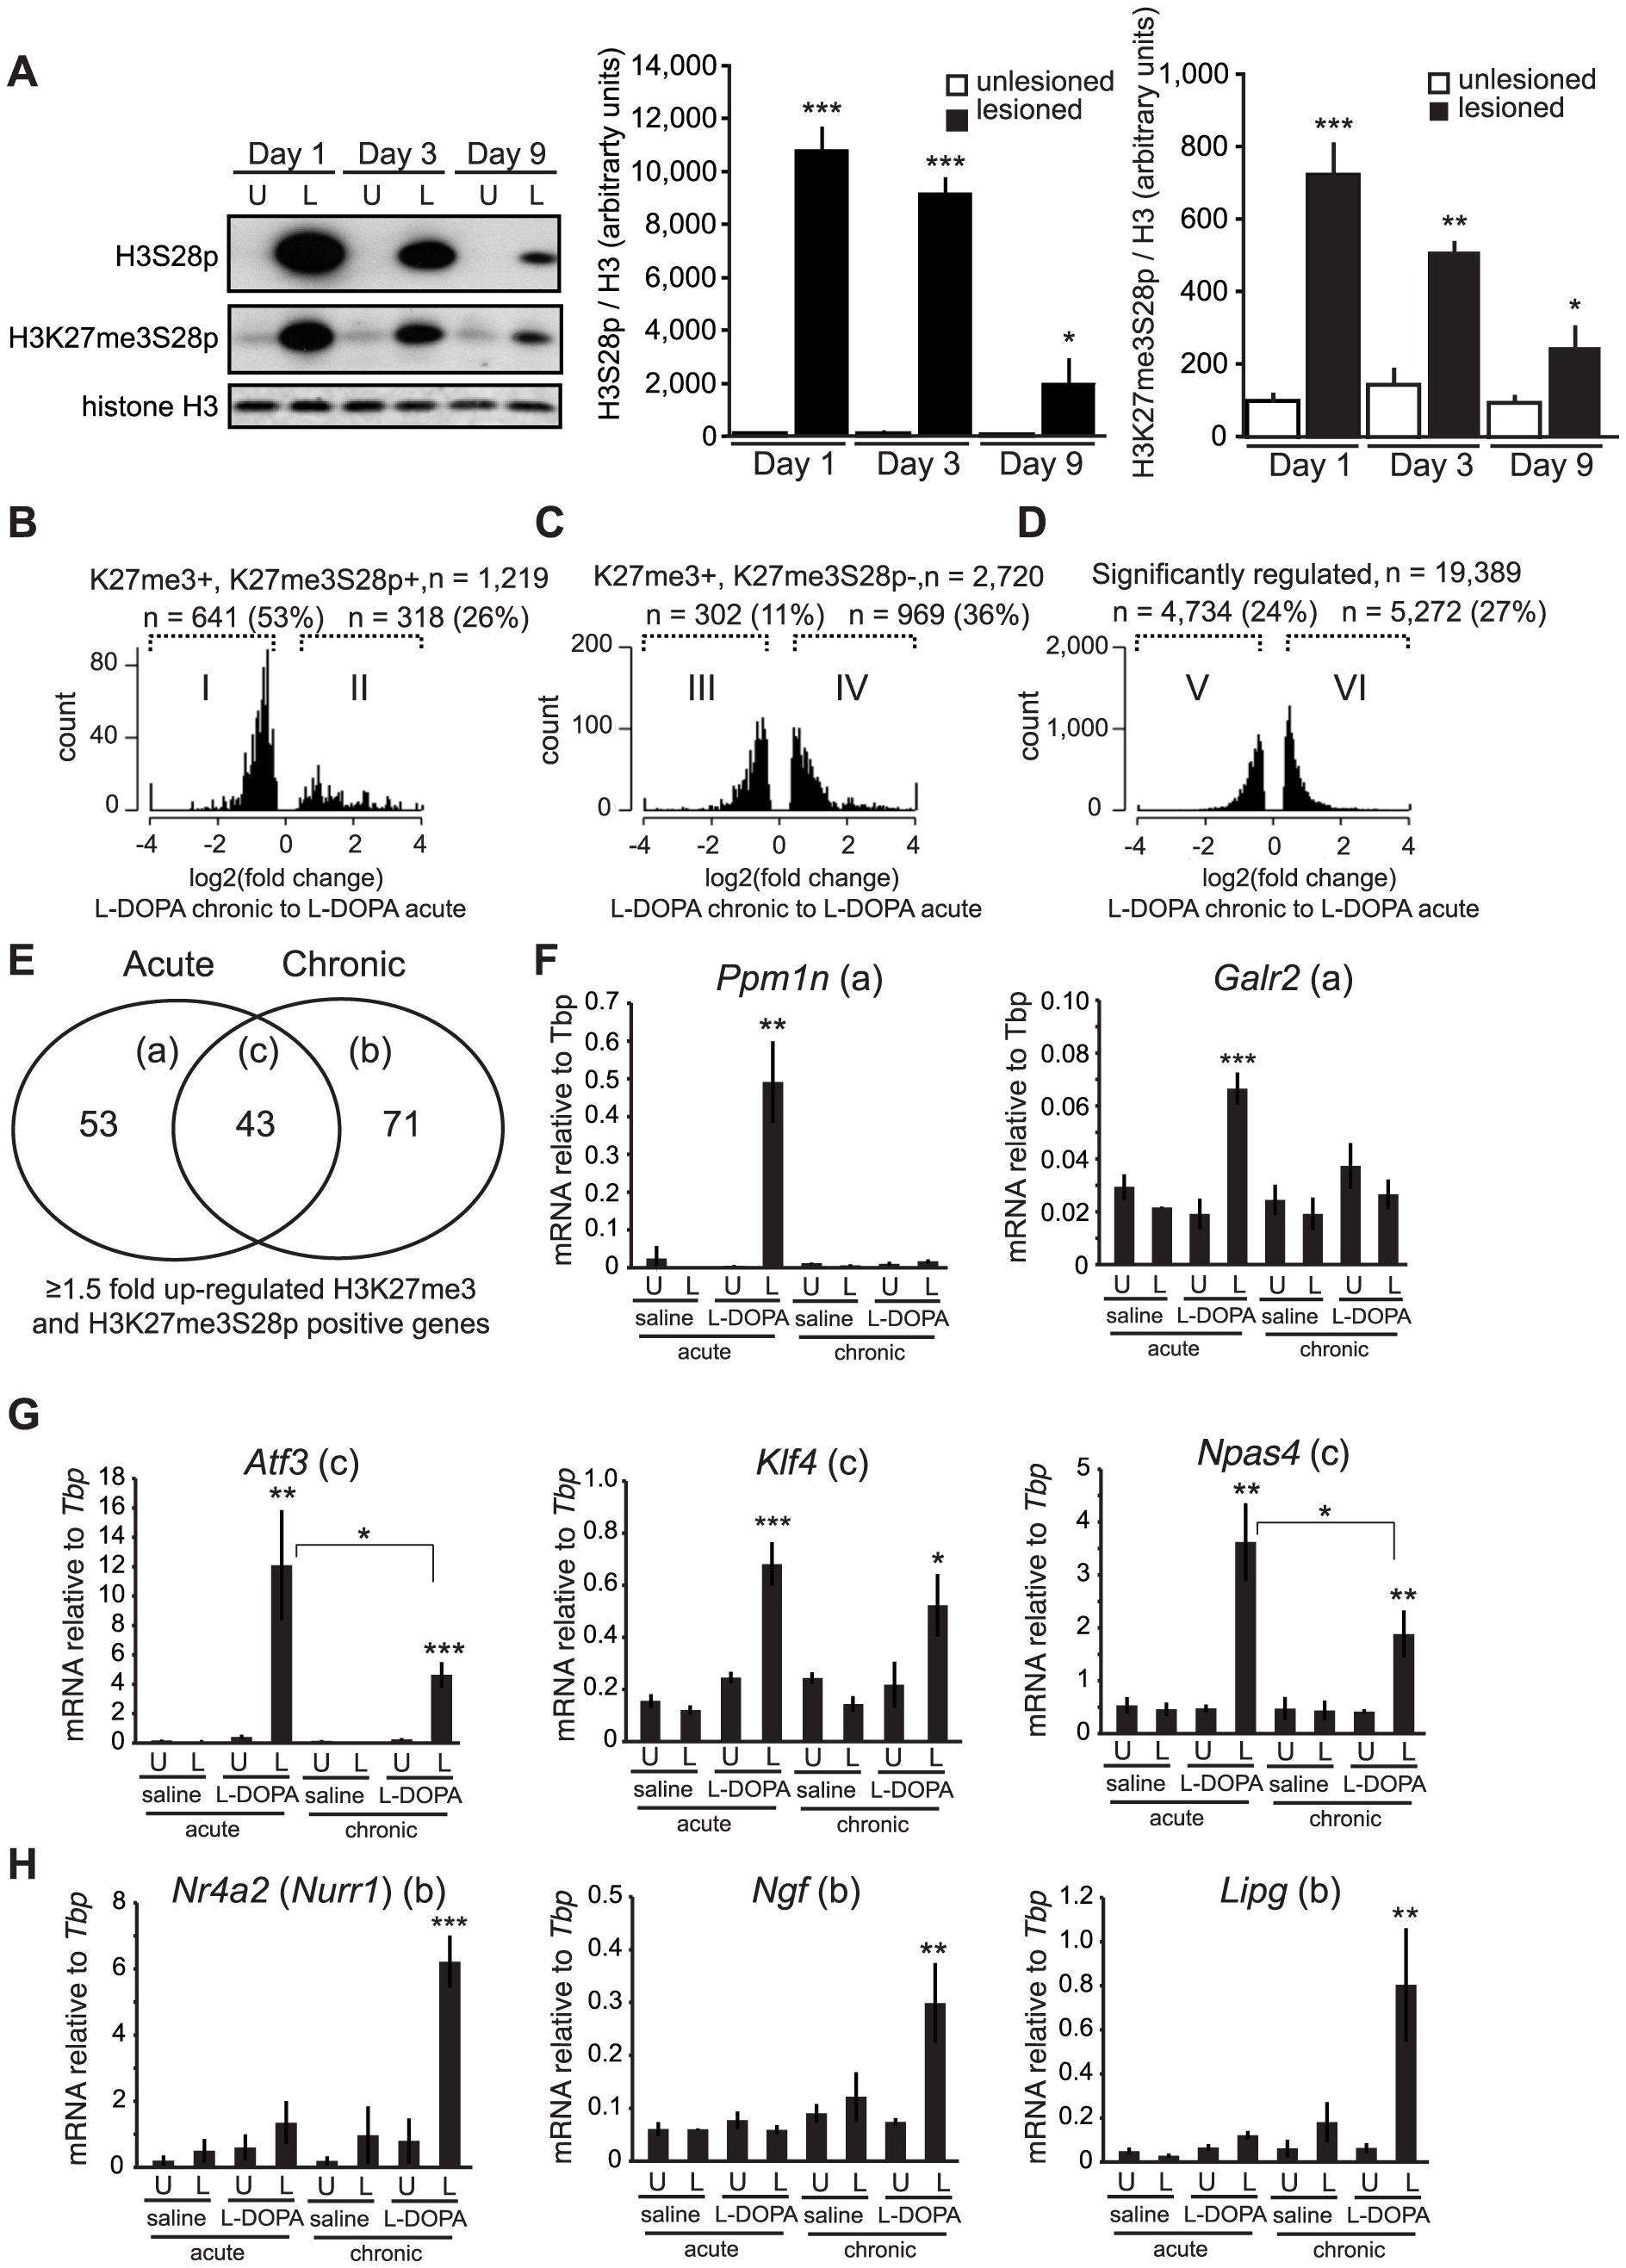 Chronic administration of L-DOPA decreases the induction of H3K27me3S28p and alters the transcriptomal response to L-DOPA.